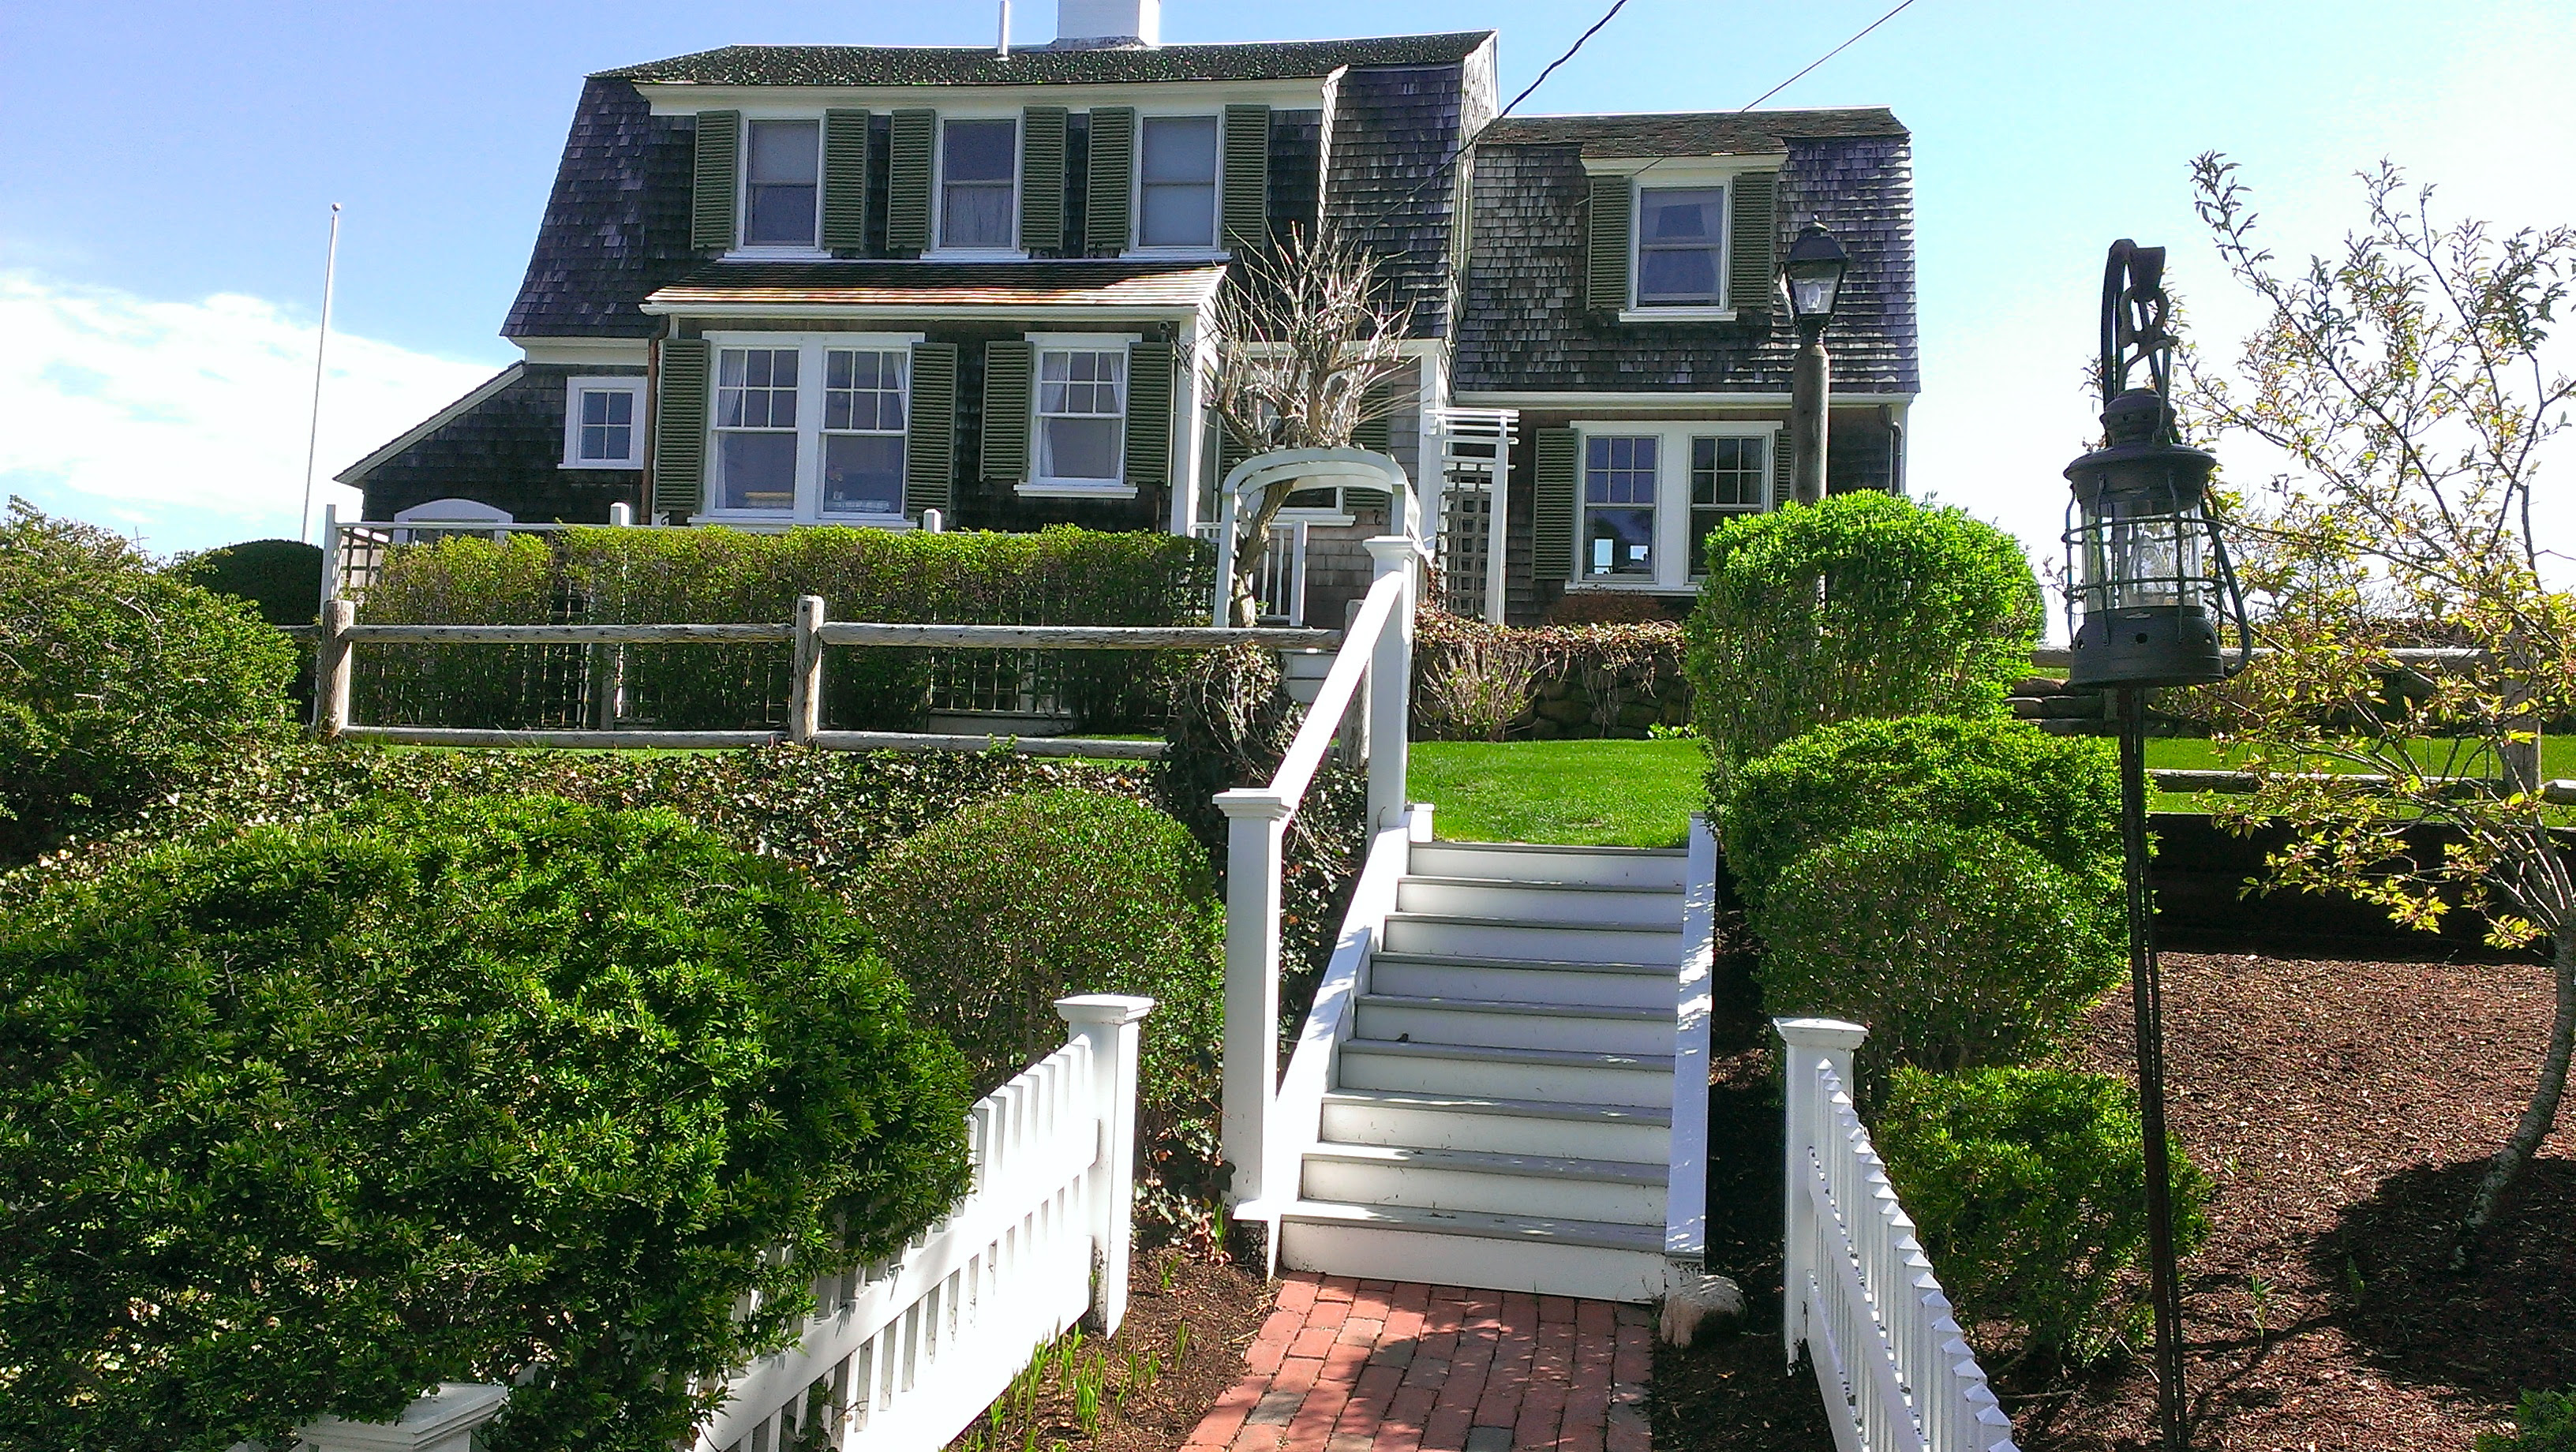 Cape Cod Vacation Rentals  The Platinum Pebble Boutique Inn